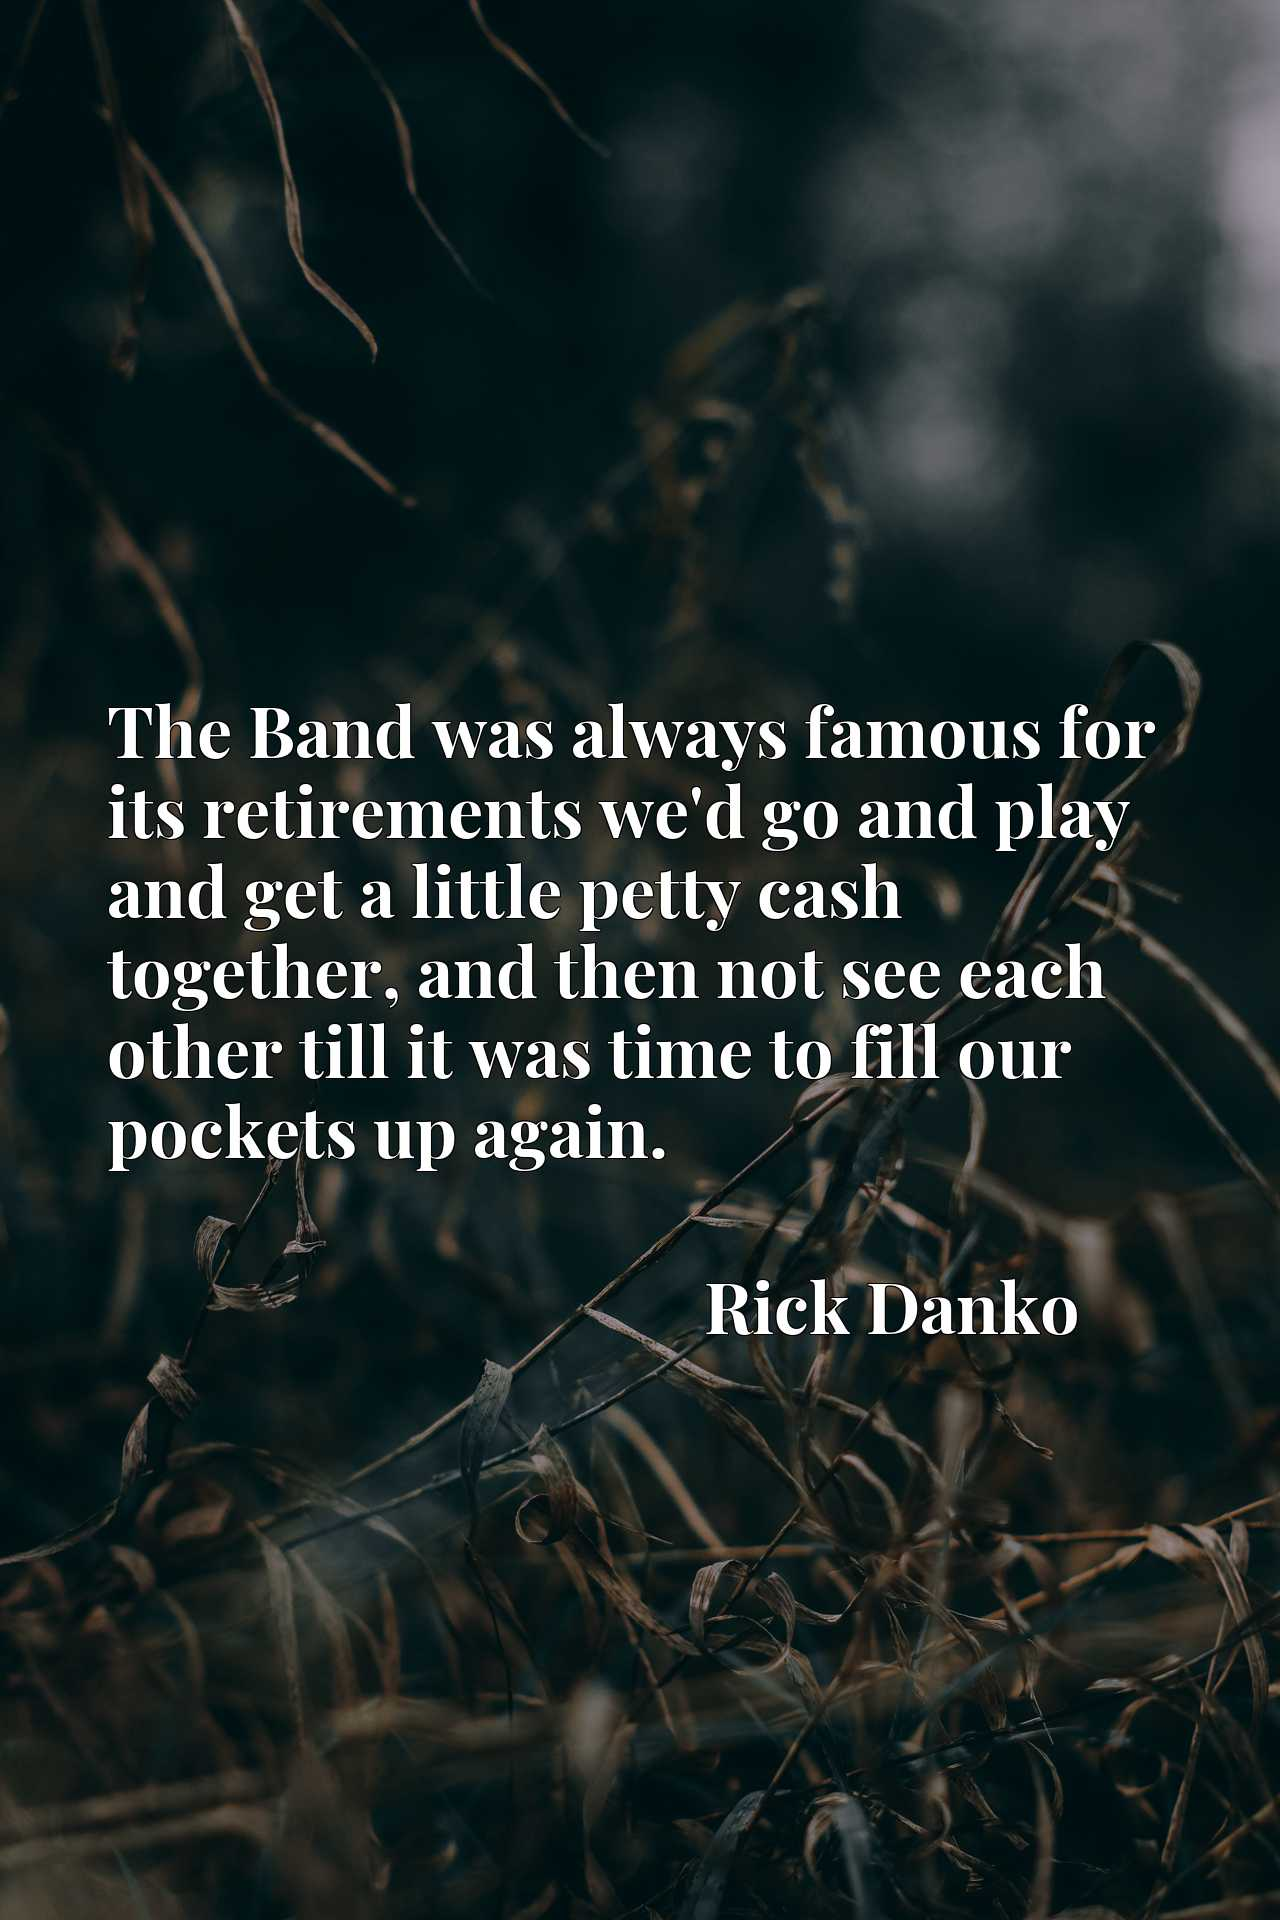 The Band was always famous for its retirements we'd go and play and get a little petty cash together, and then not see each other till it was time to fill our pockets up again.